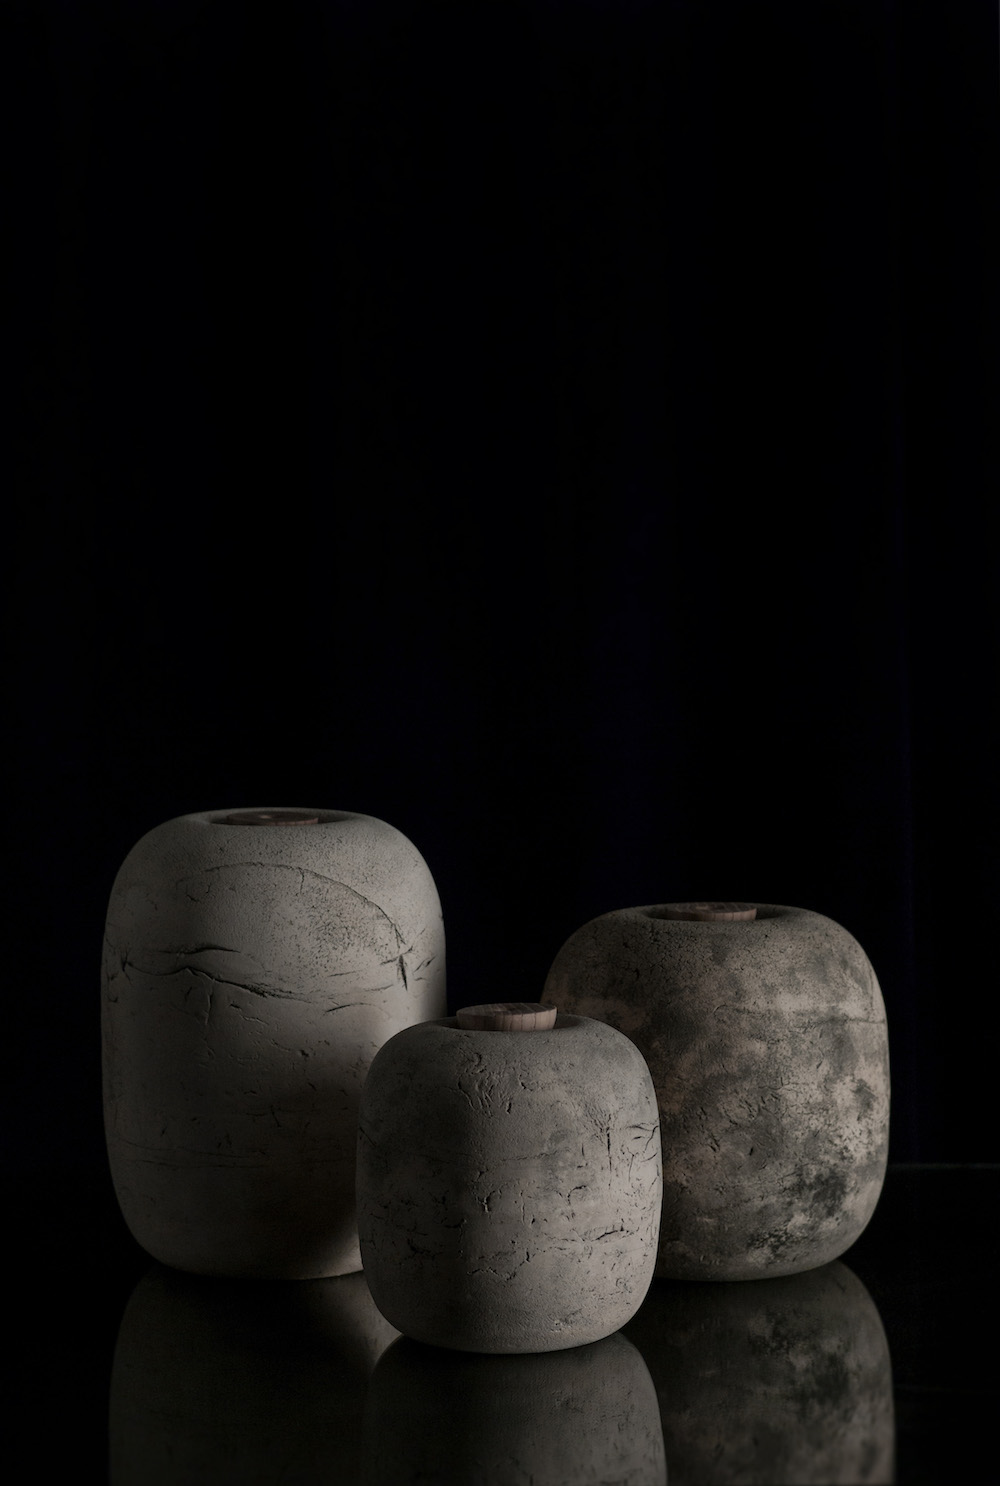 Urns collection, winner of the Product and Industrial Design category